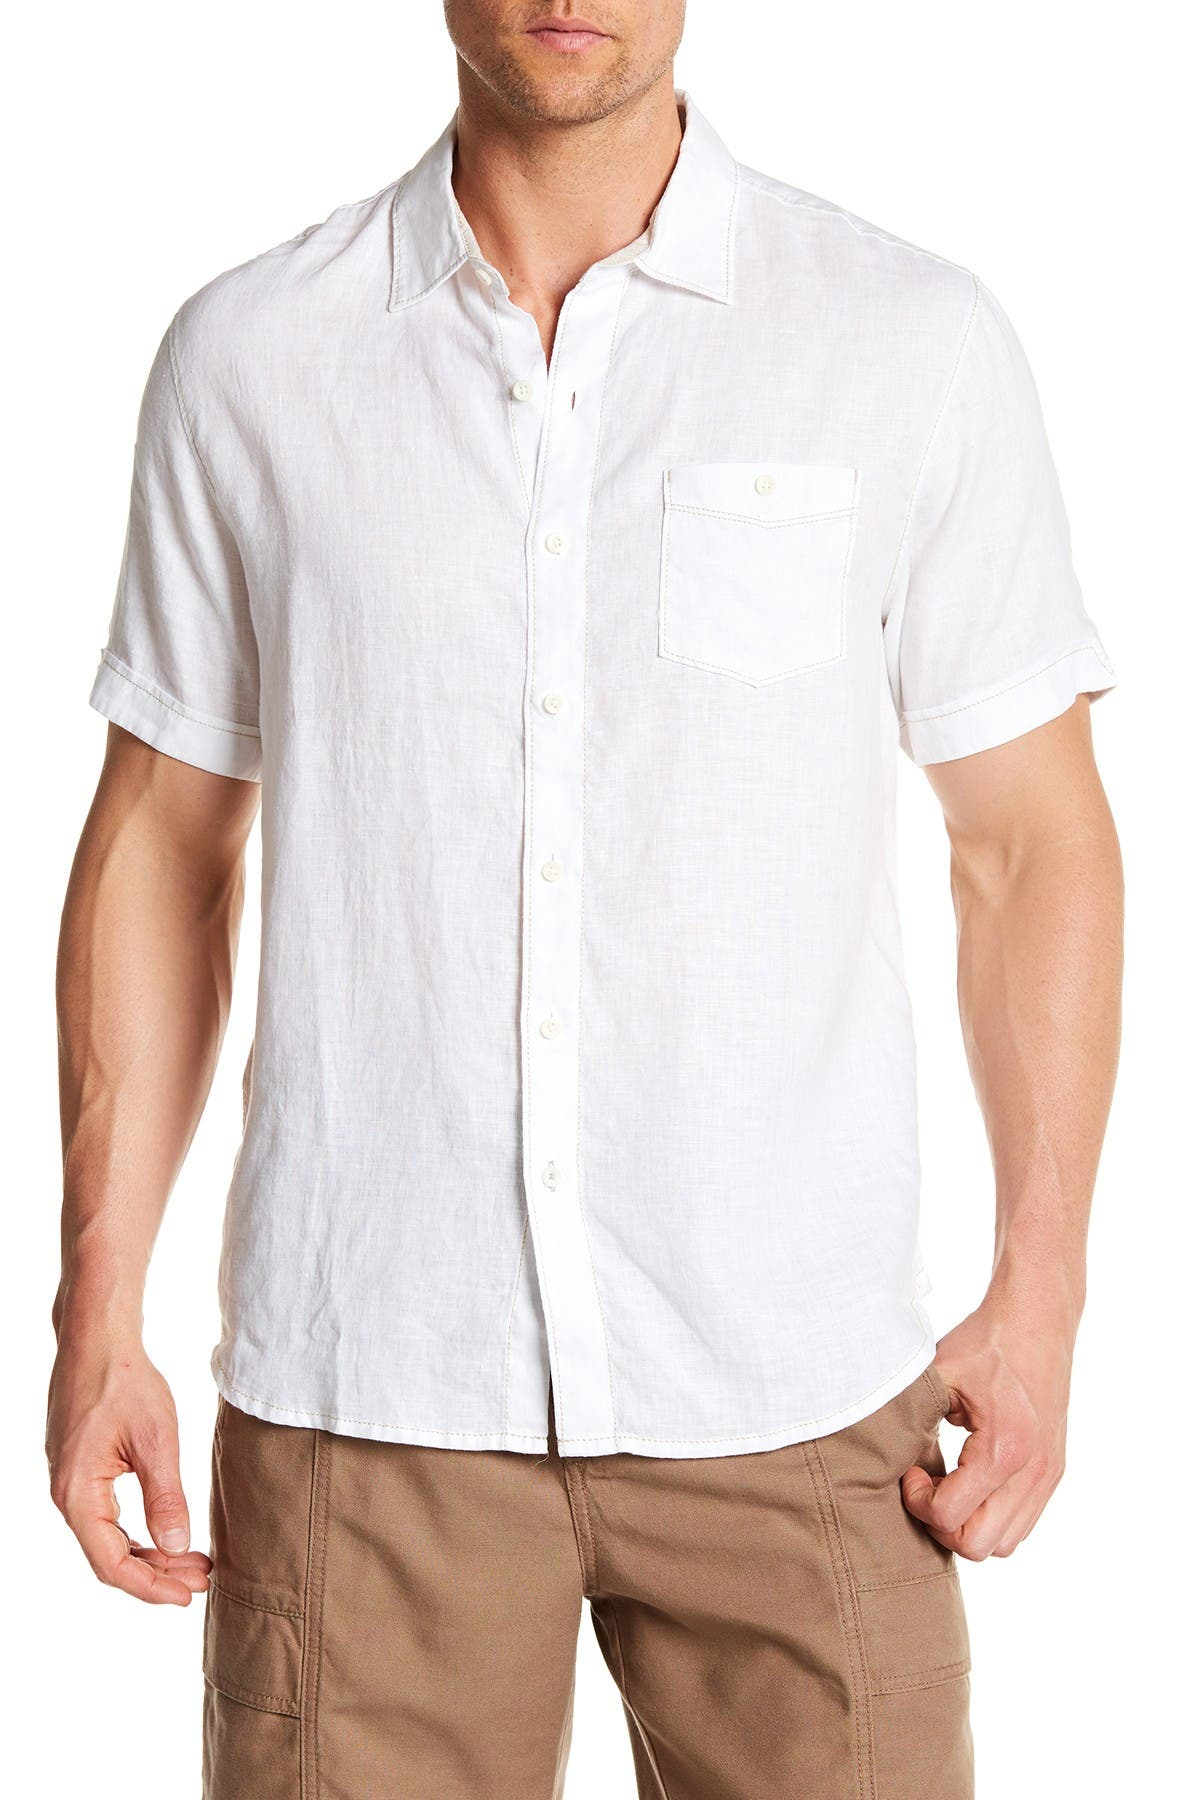 Image of Tommy Bahama Party Breezer Linen Short Sleeve Modern Fit Shirt